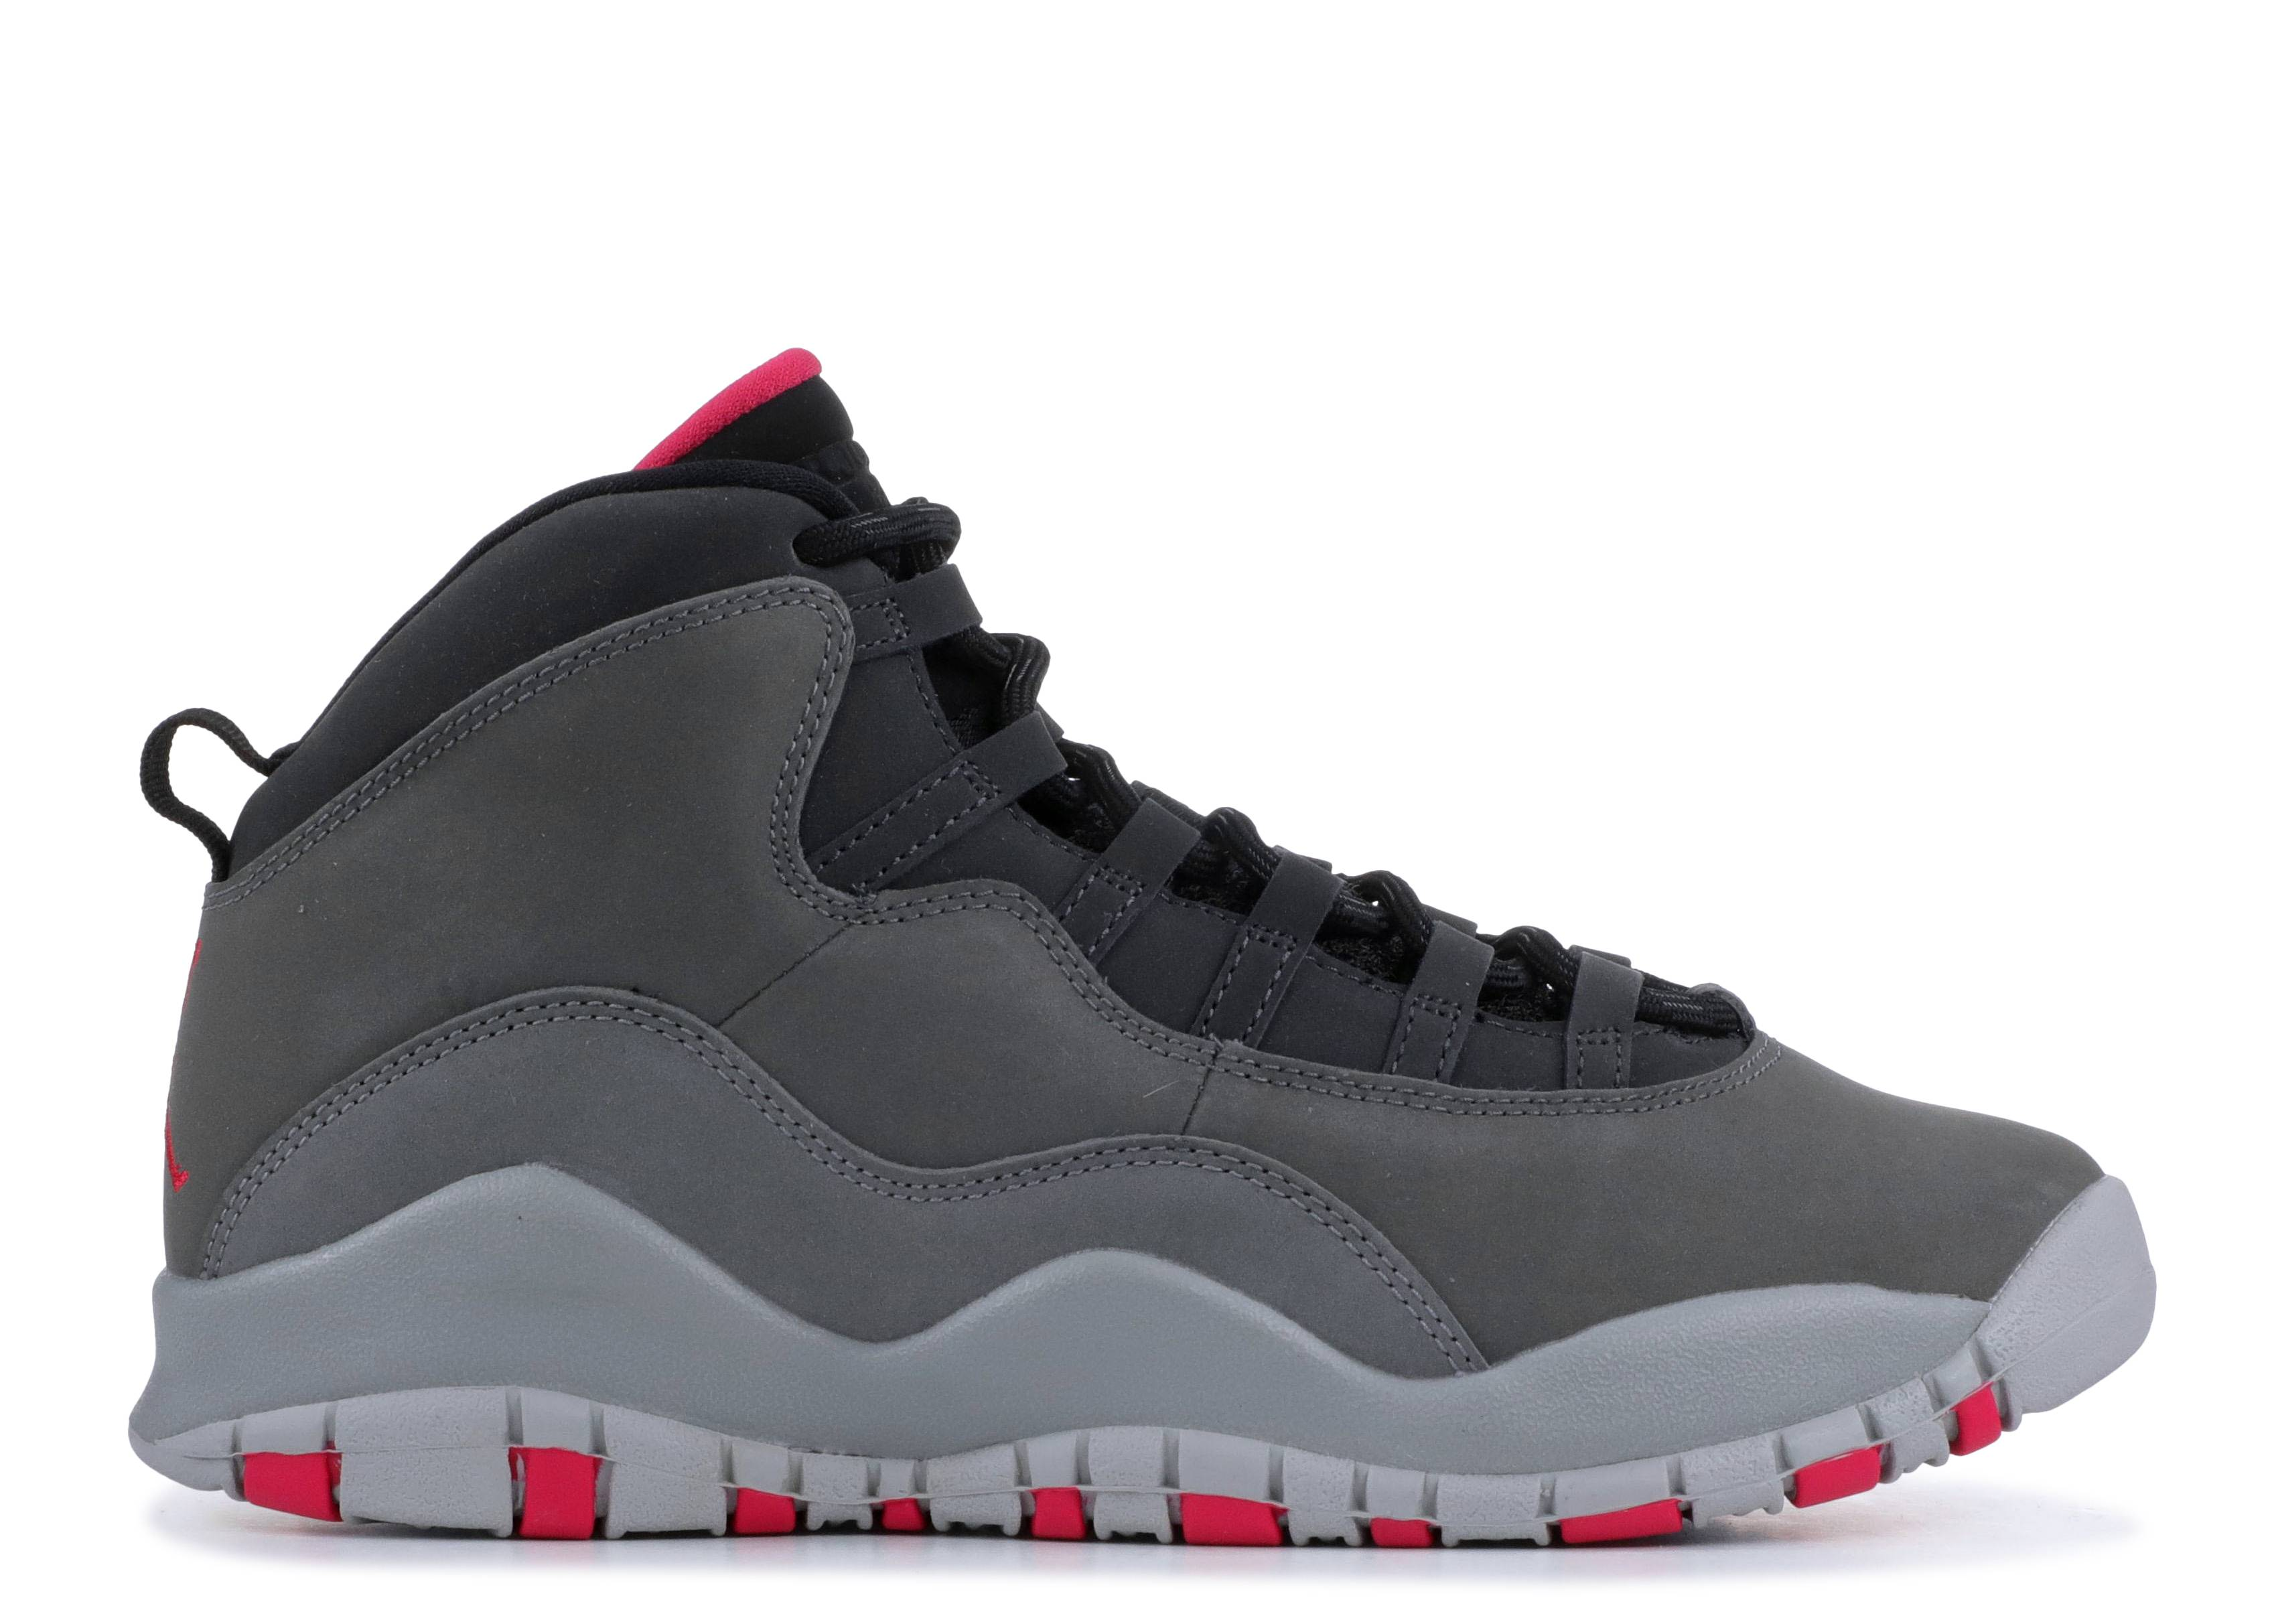 "Air Jordan 10 Retro GS 'Smoke Grey' ""Smoke Grey"""